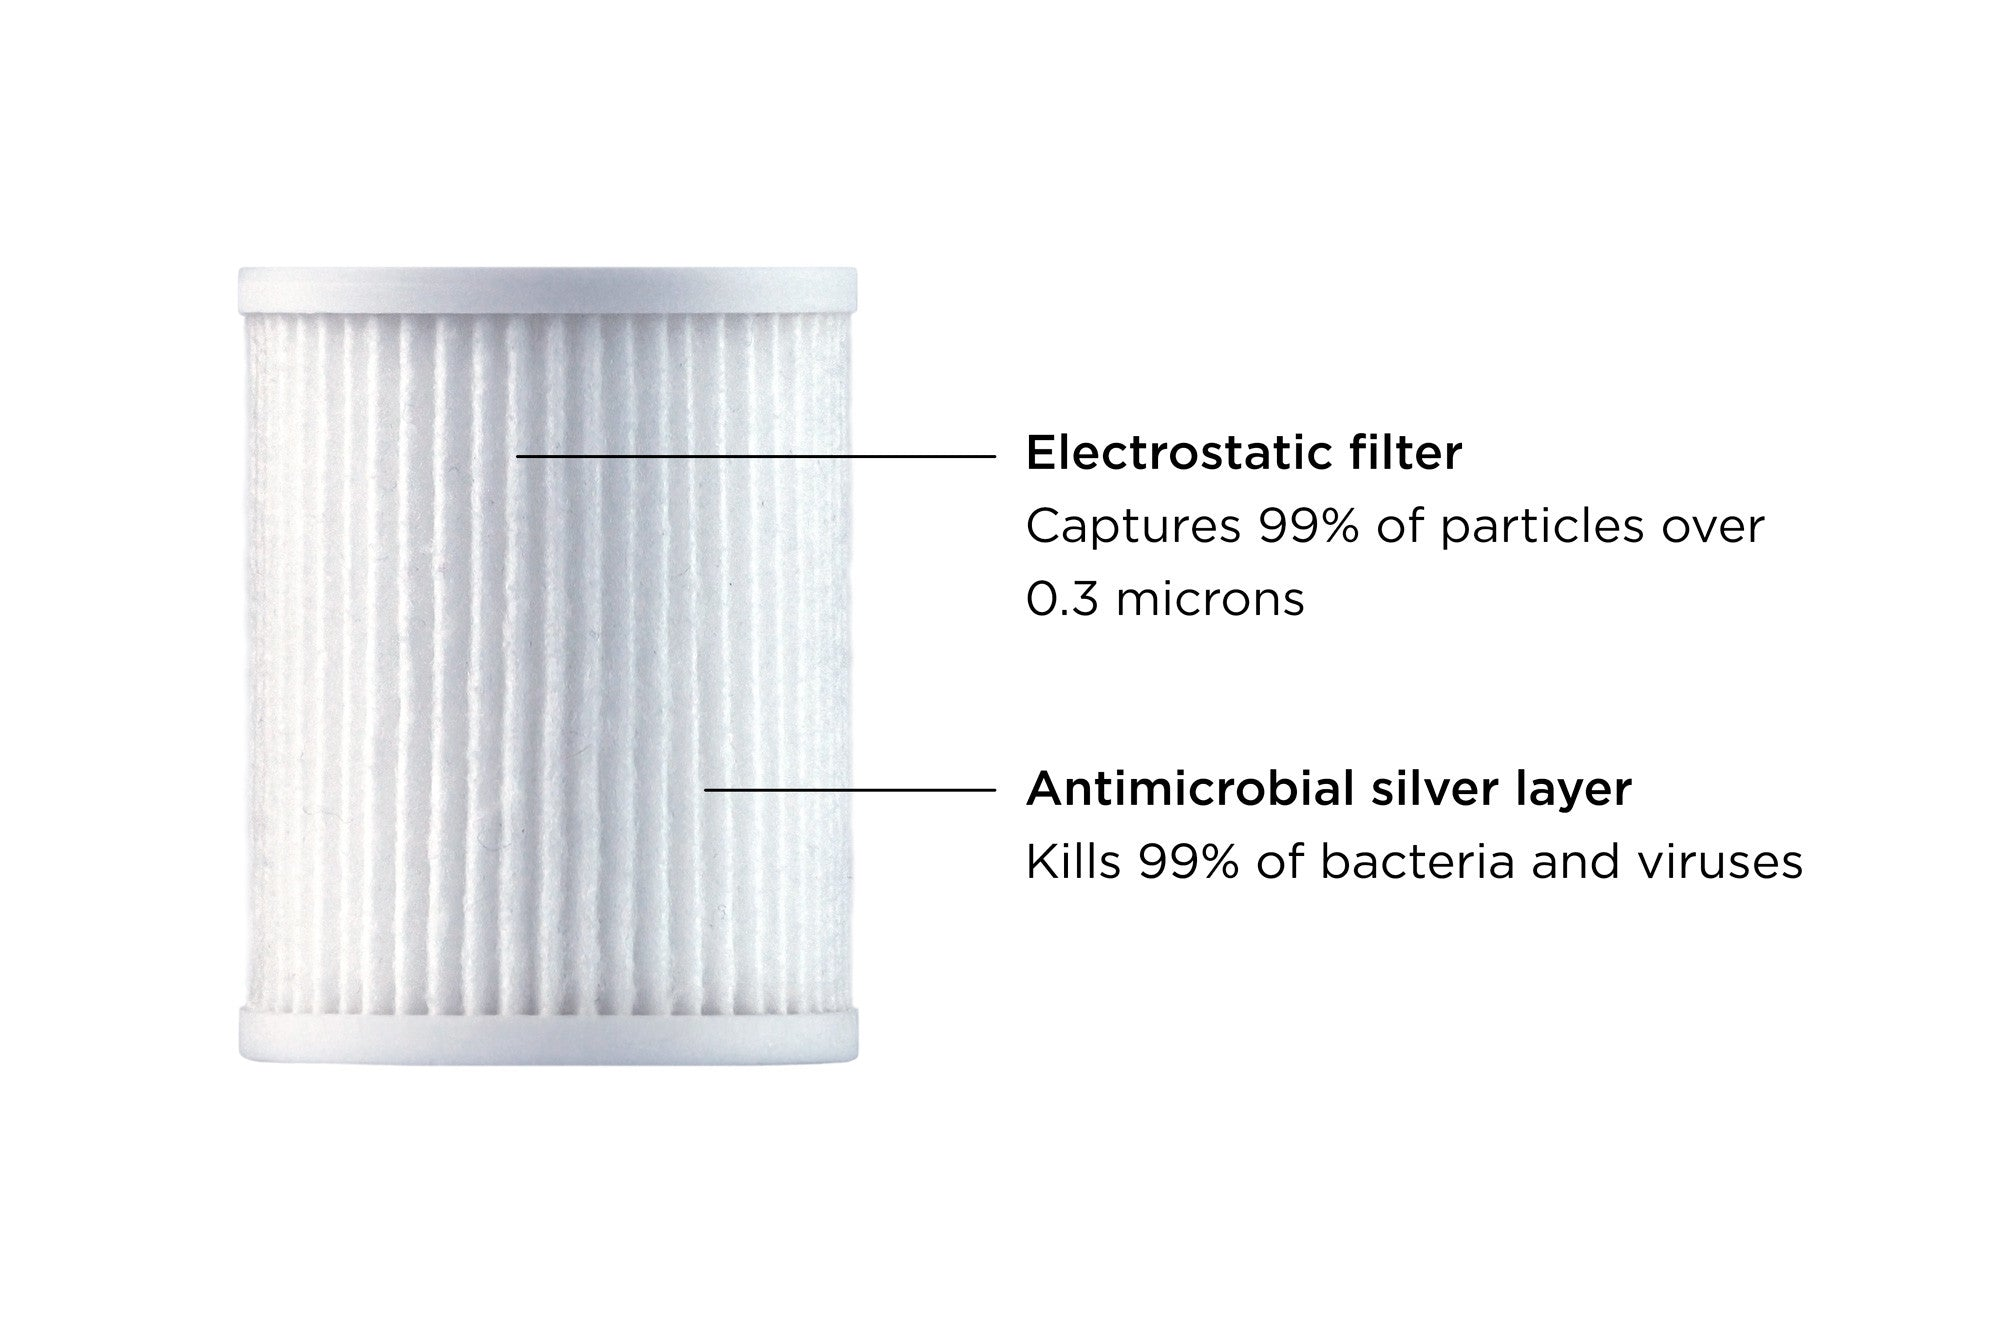 The Filter Is Lined With An Antimicrobial Layer Silver This Keeps It Clean From Microbes Such As Bacteria And Mold Air Passes Through